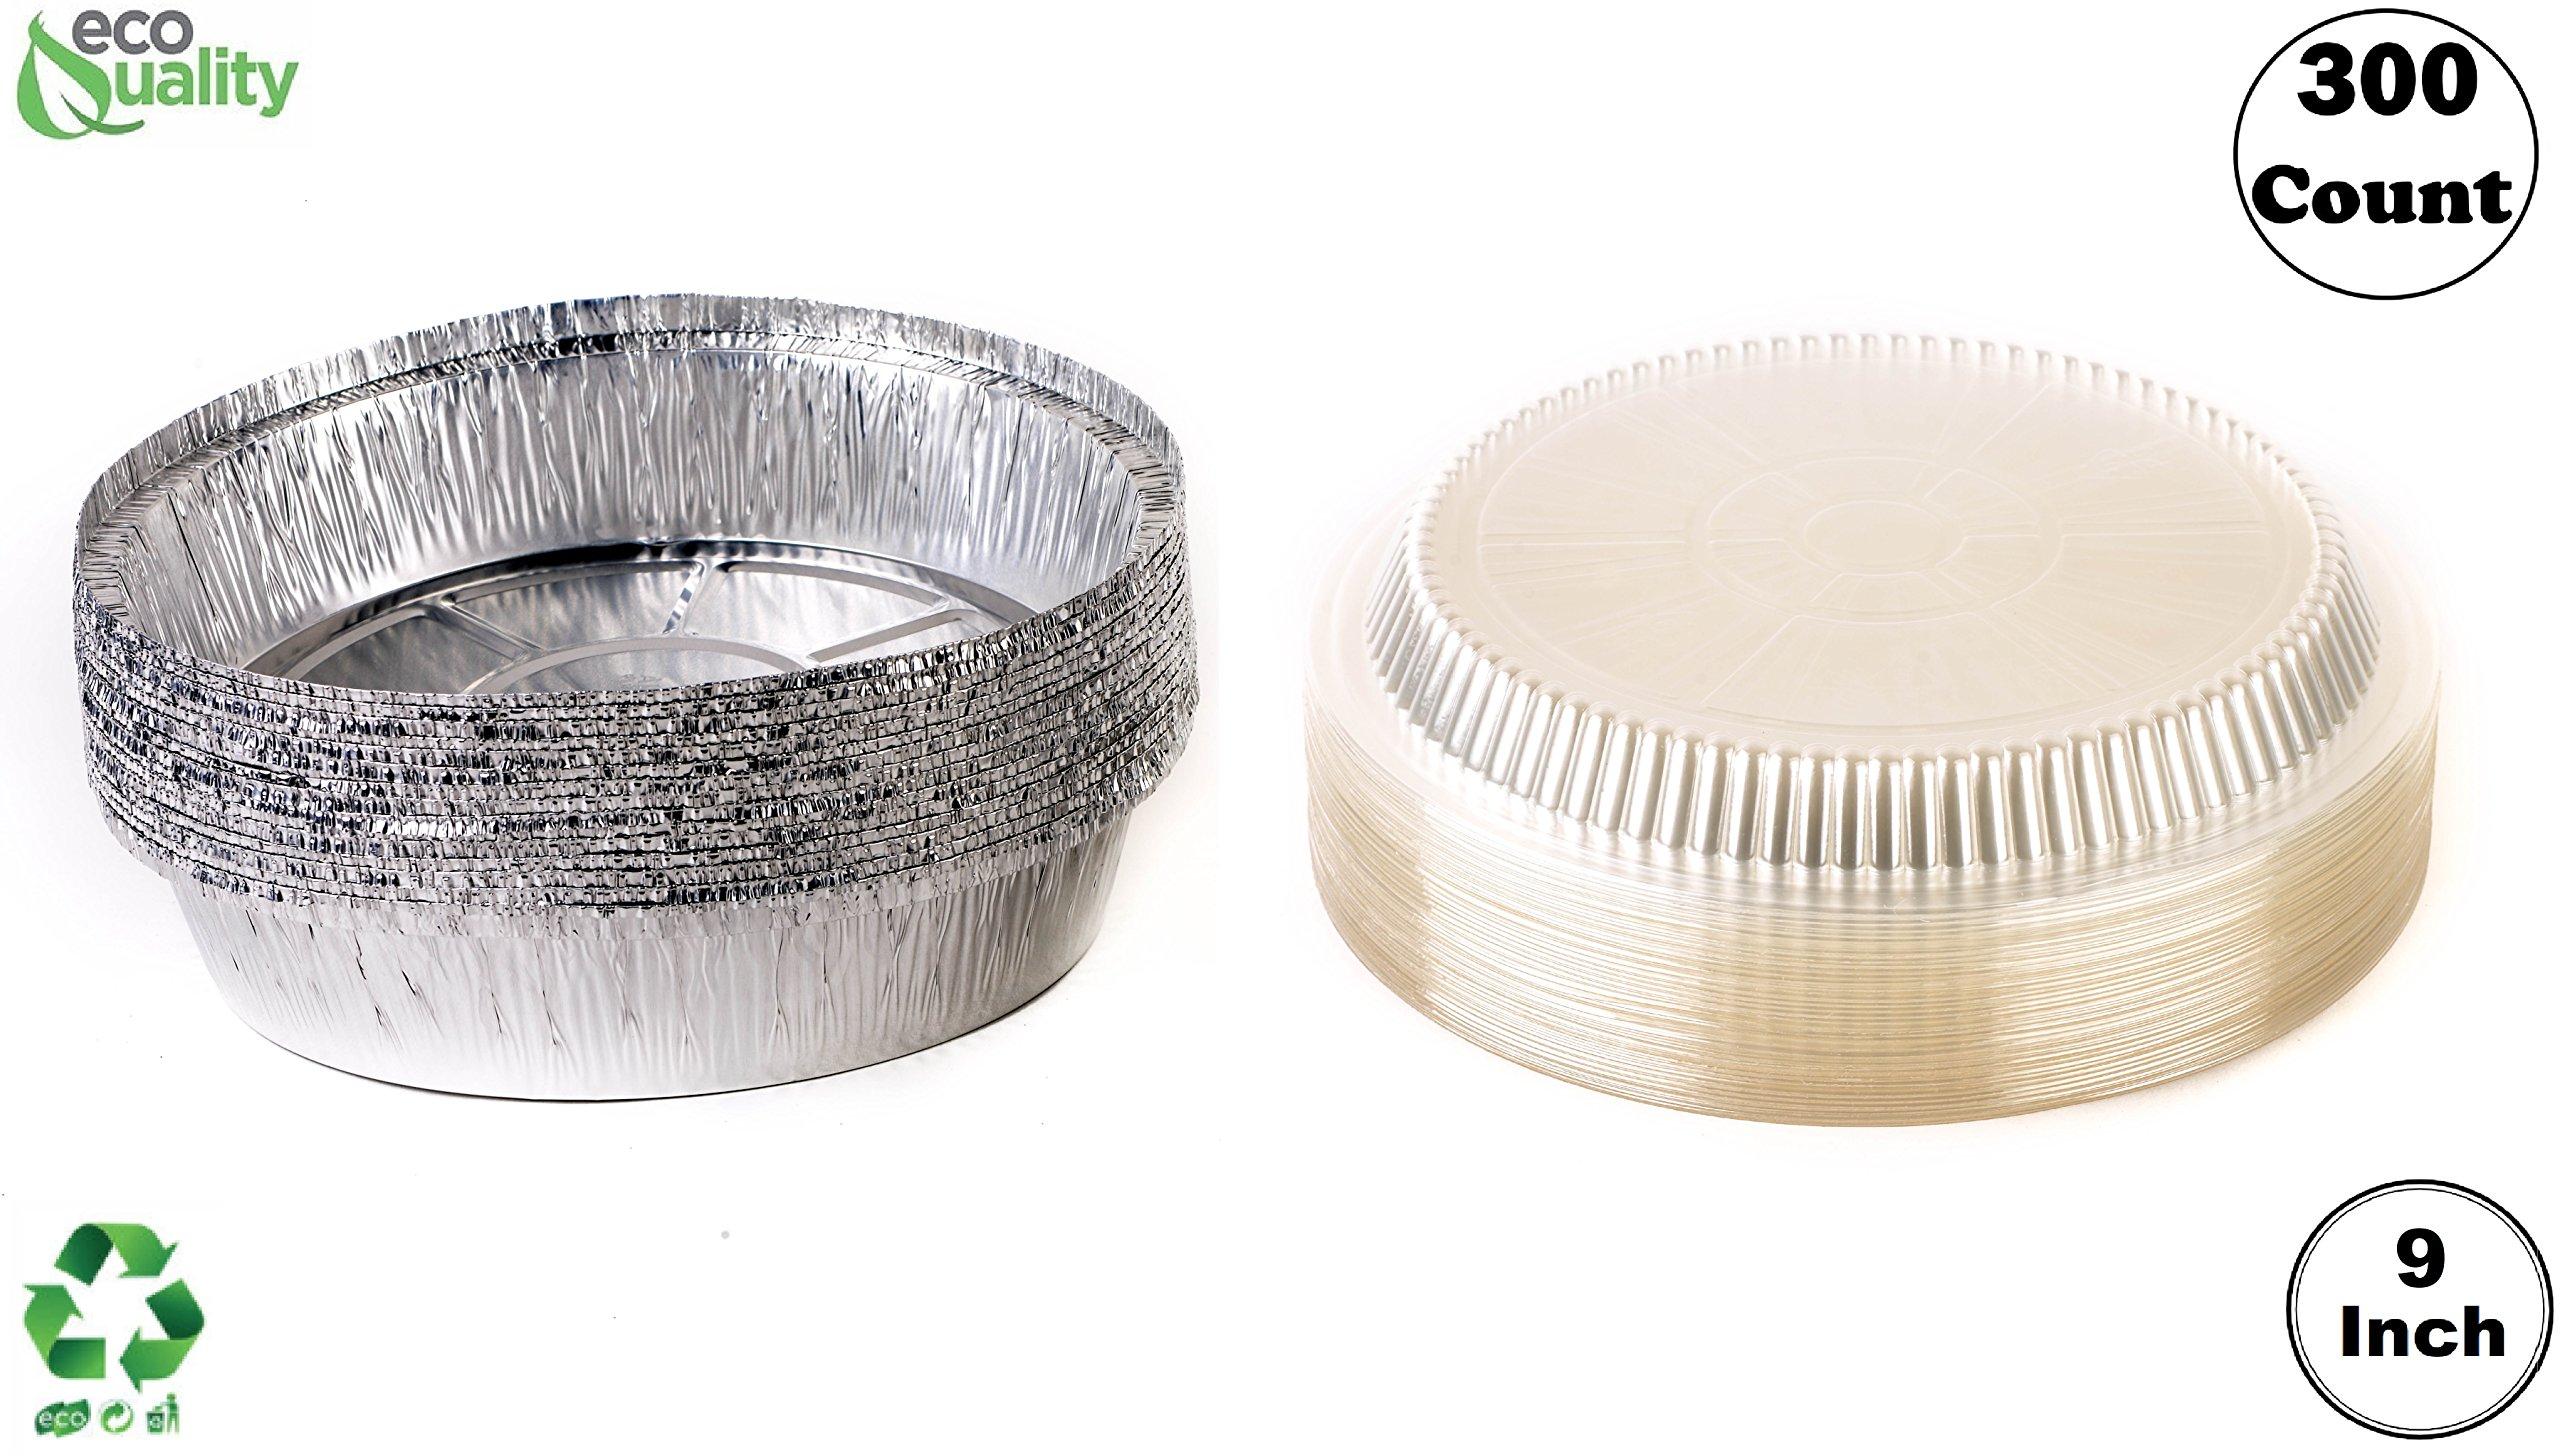 (300 Pack) - 9 Inch Disposable Round Aluminum Foil Take-Out Pans with Plastic Lids Set - Disposable Tin Containers, Perfect for Baking, Cooking, Catering, Parties, Restaurants by EcoQuality